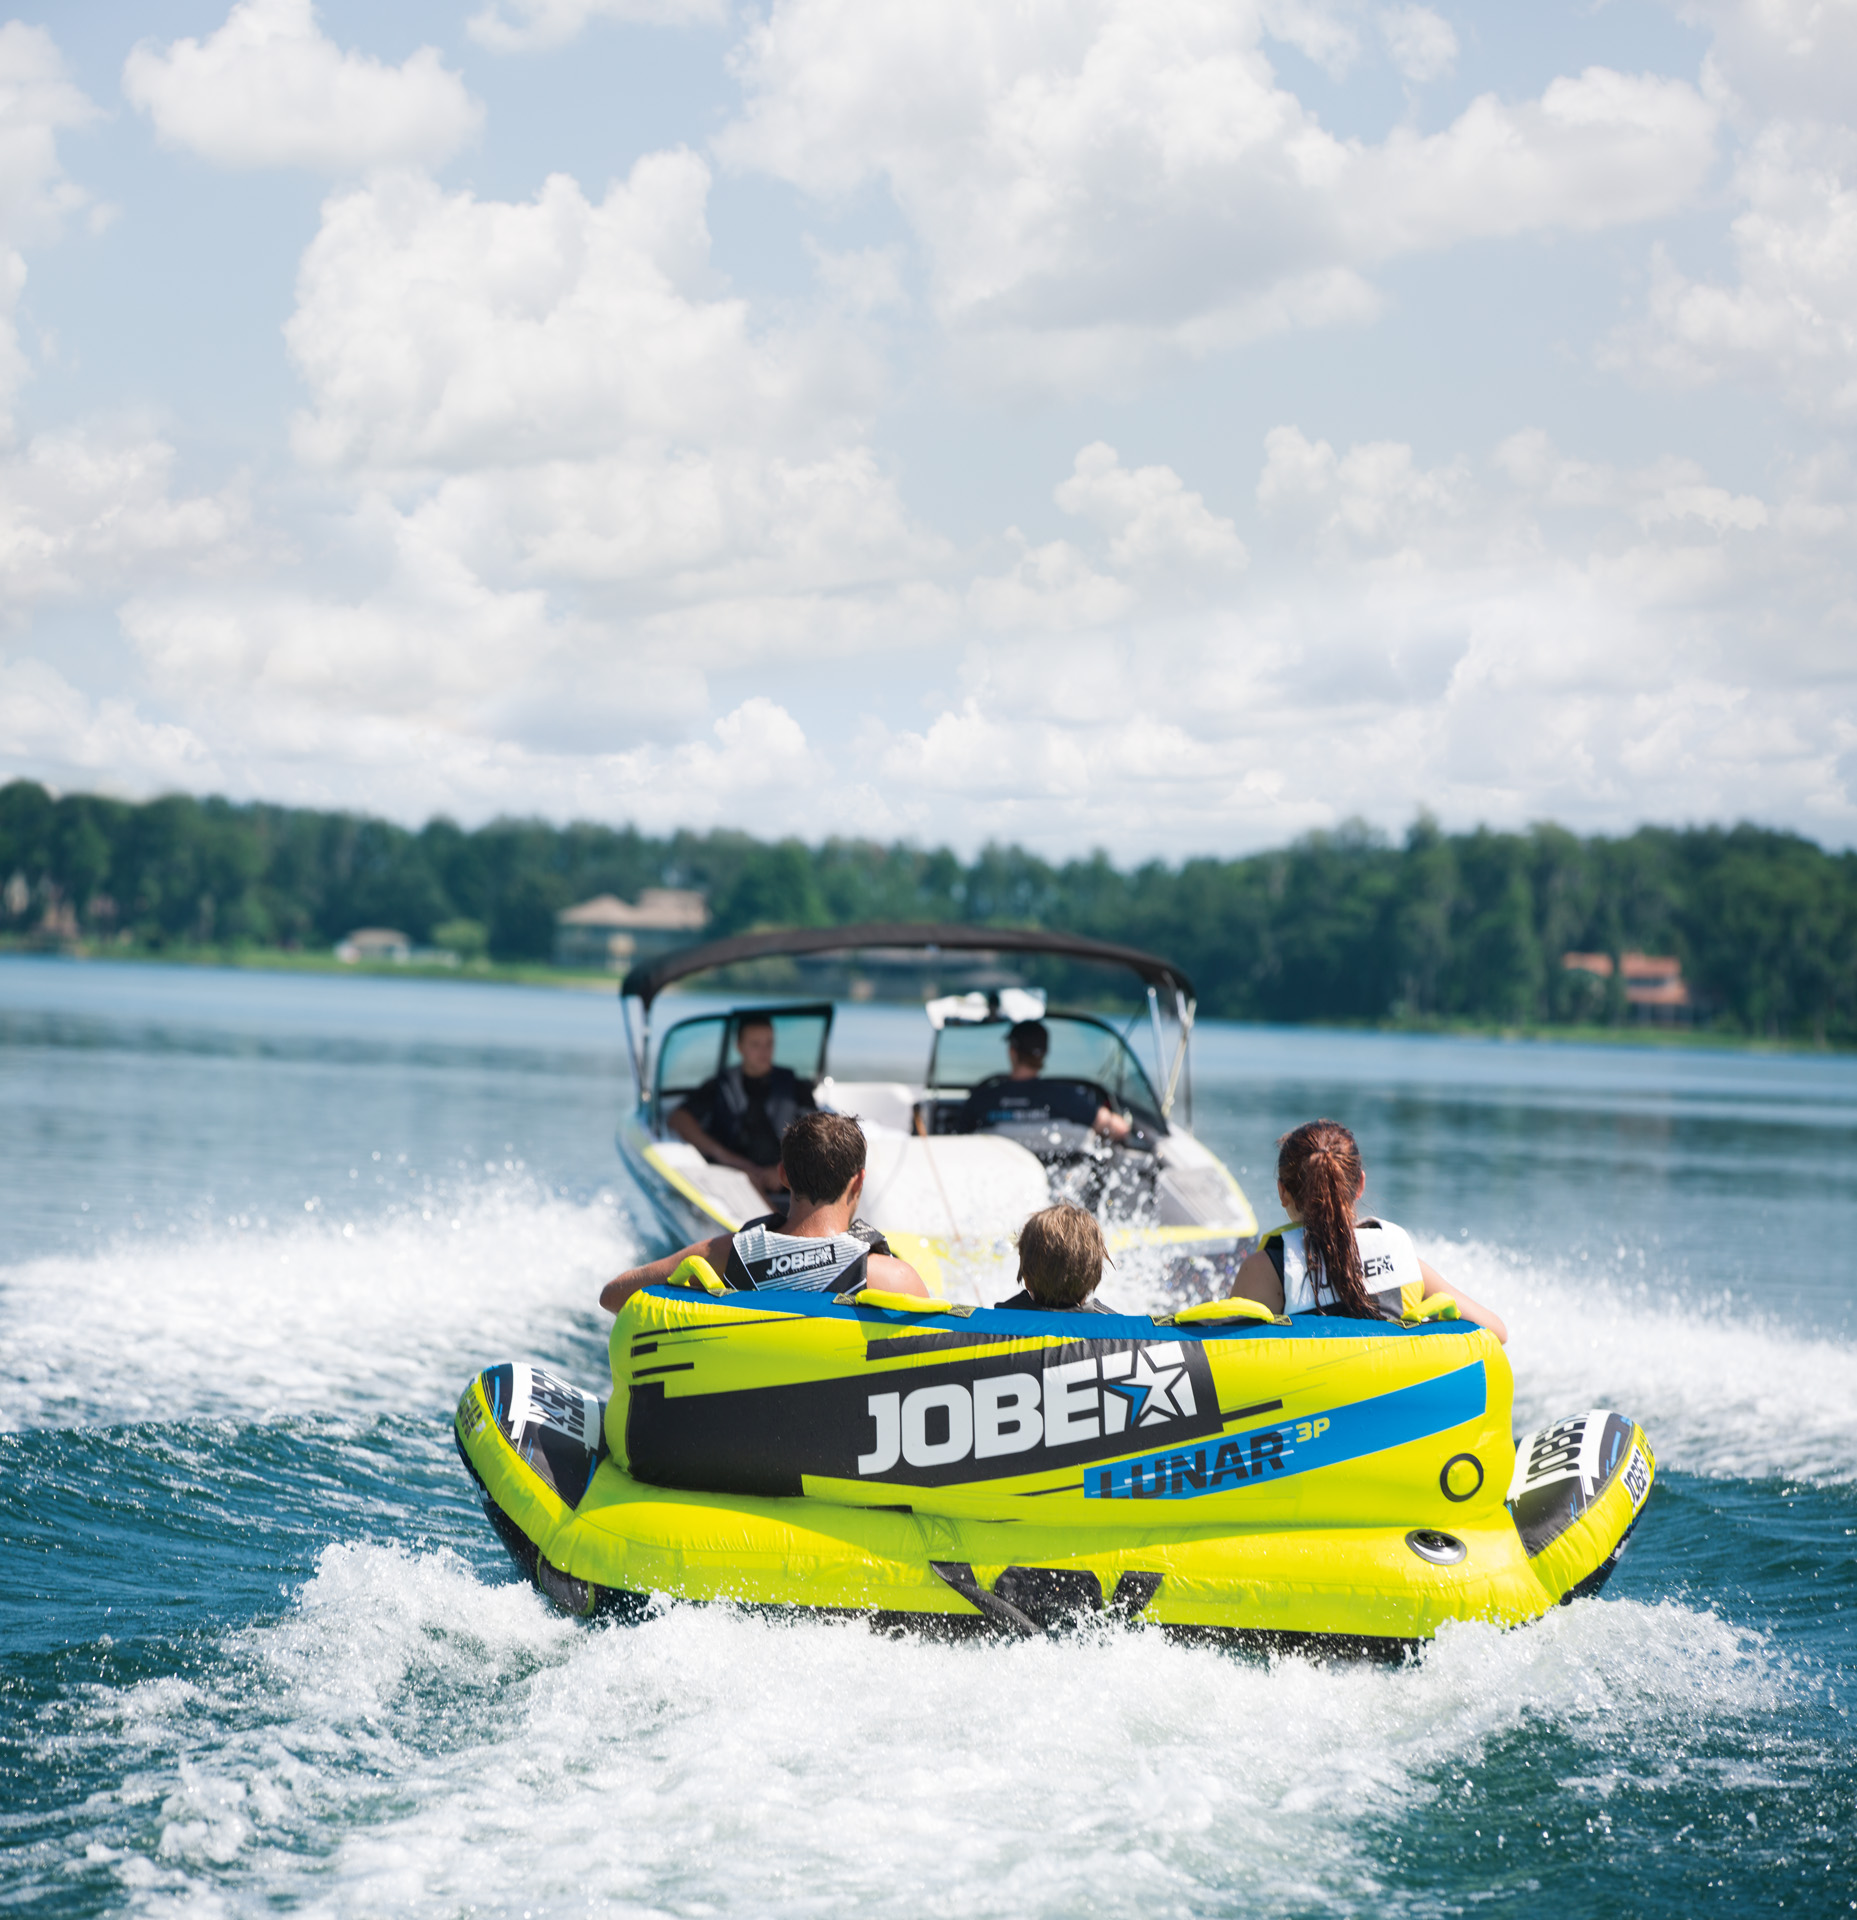 Endless fun with the Jobe Lunar!